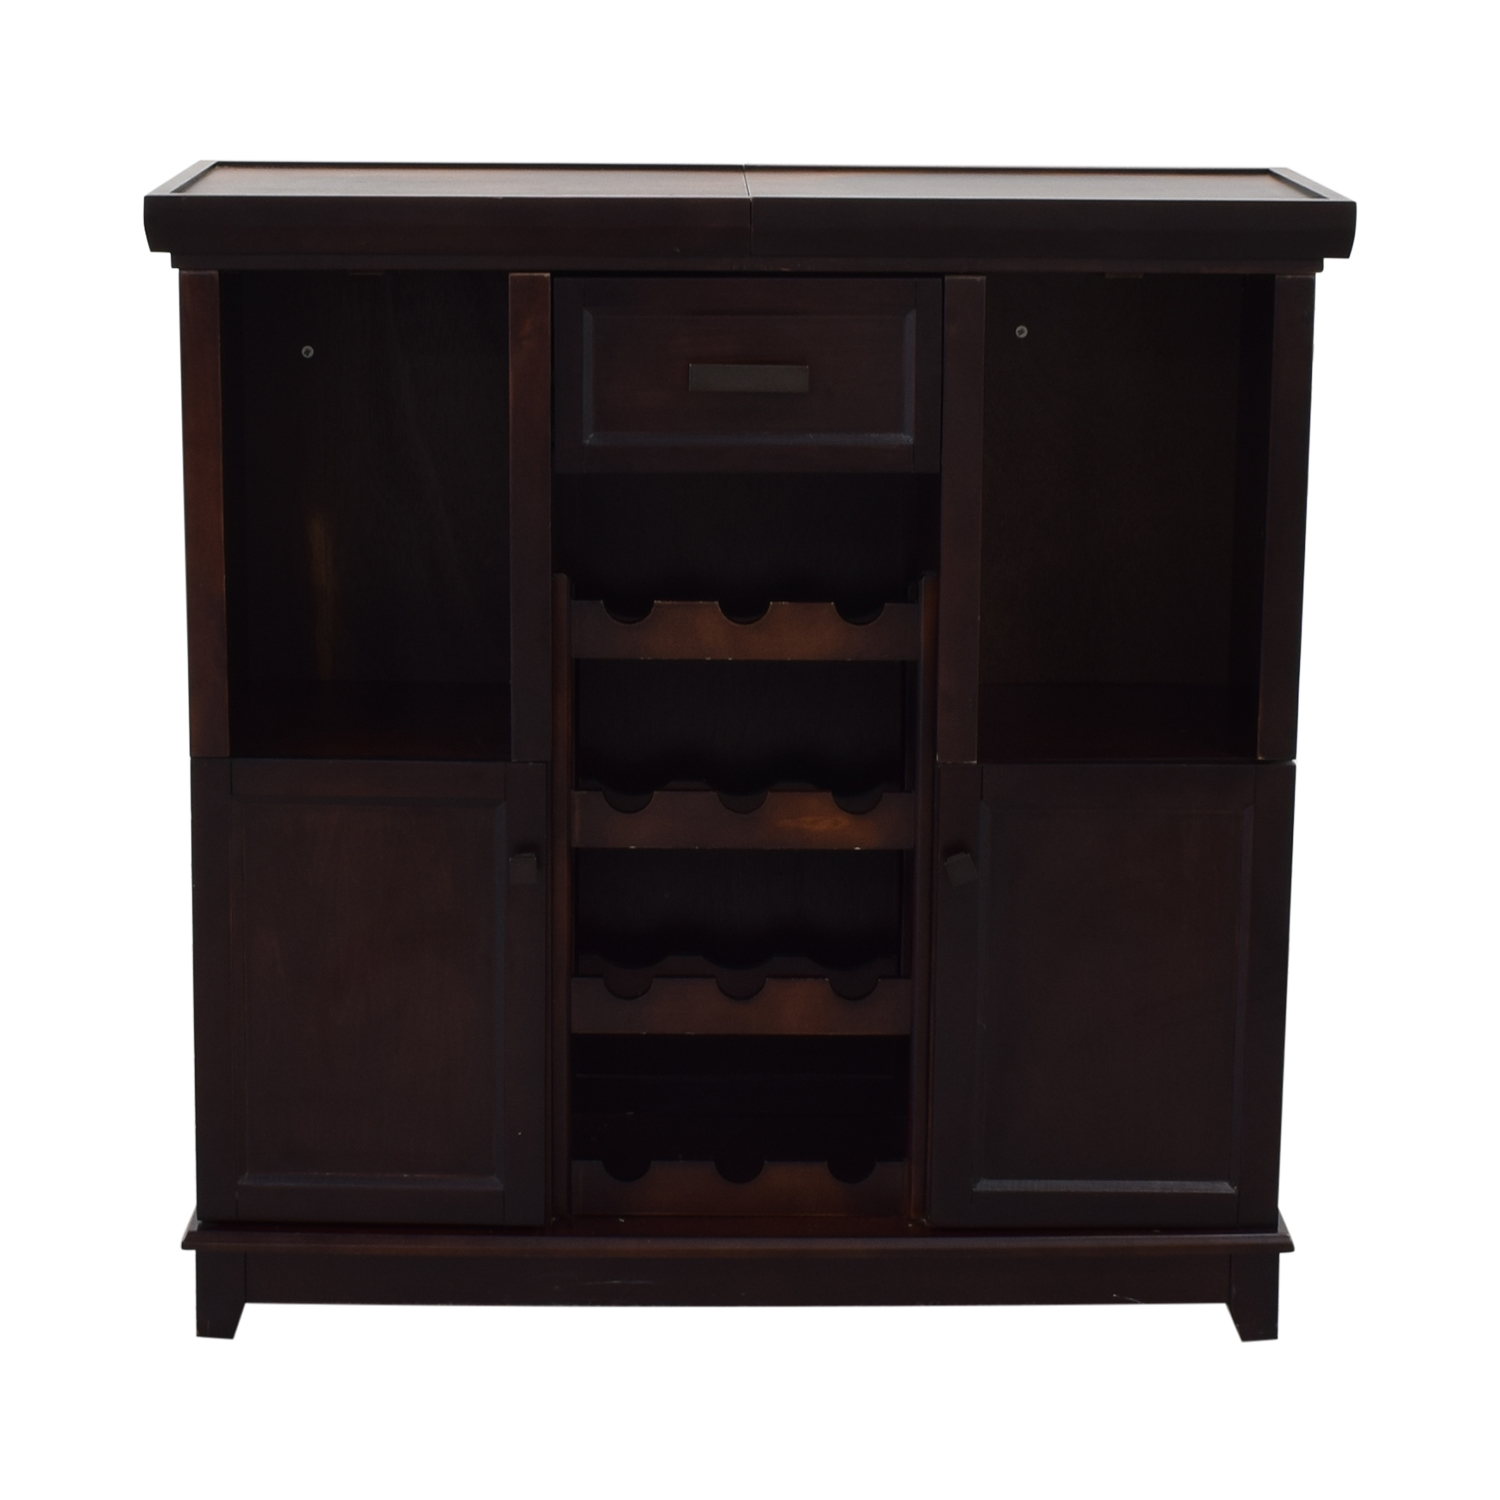 Bed Bath & Beyond Tuscan Expandable Wine Bar sale